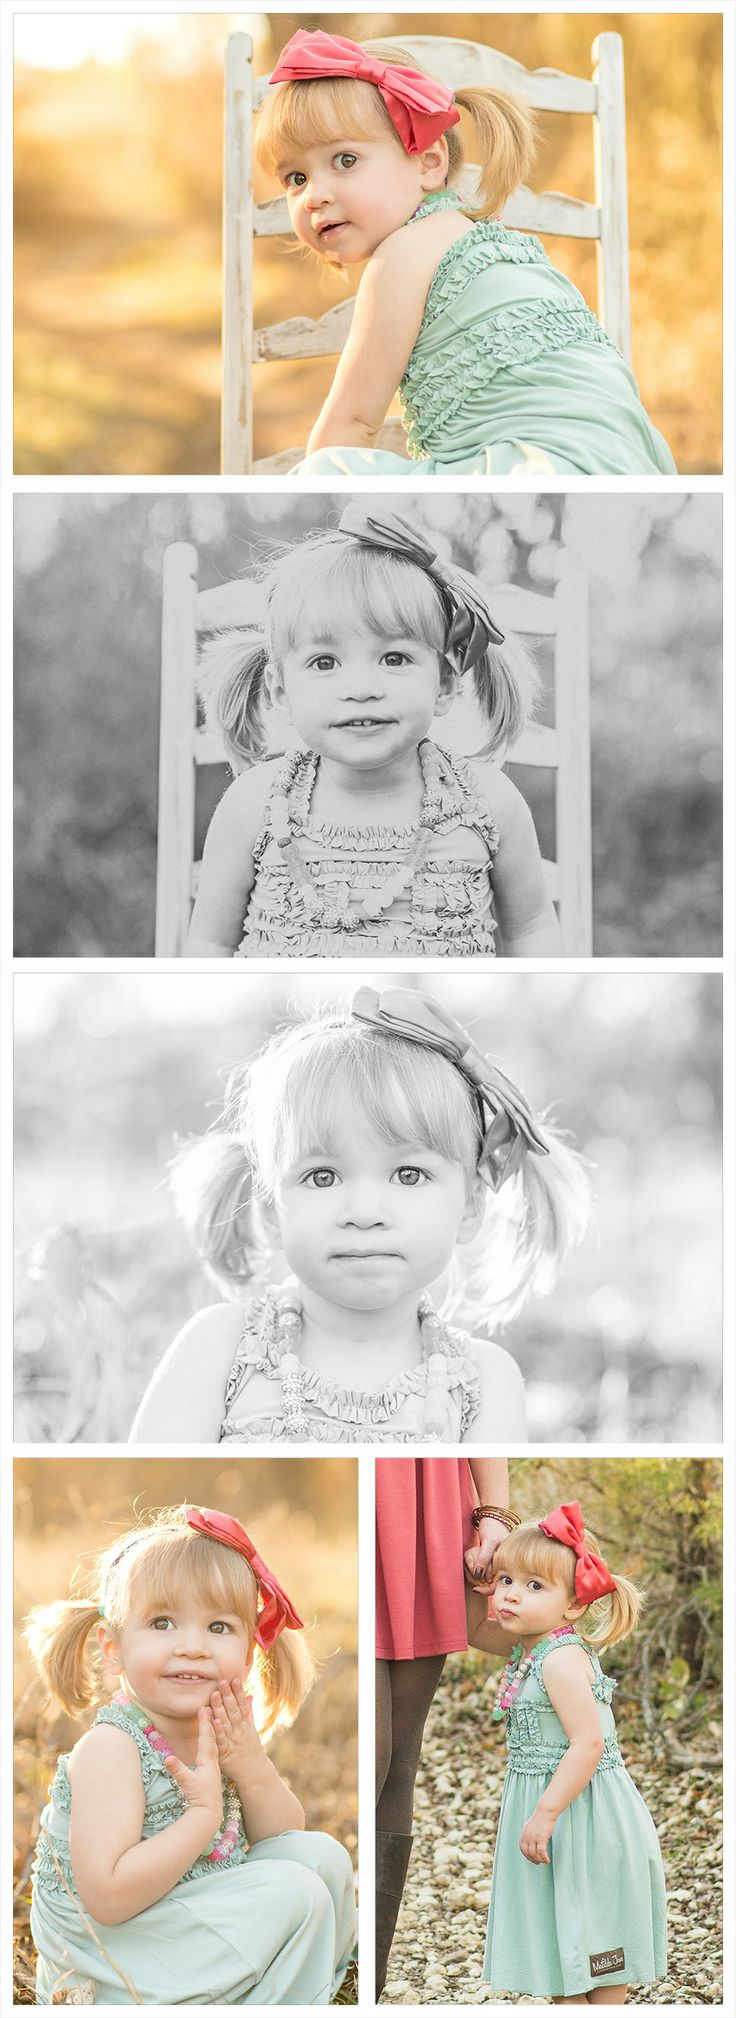 2nd second birthday picture ideas, daughter's pictures, baby girl, little girl picture ideas, rent my dust, antique chair, backlight, back light, big pink bow, matilda jane dress, children's portraits, creative photography